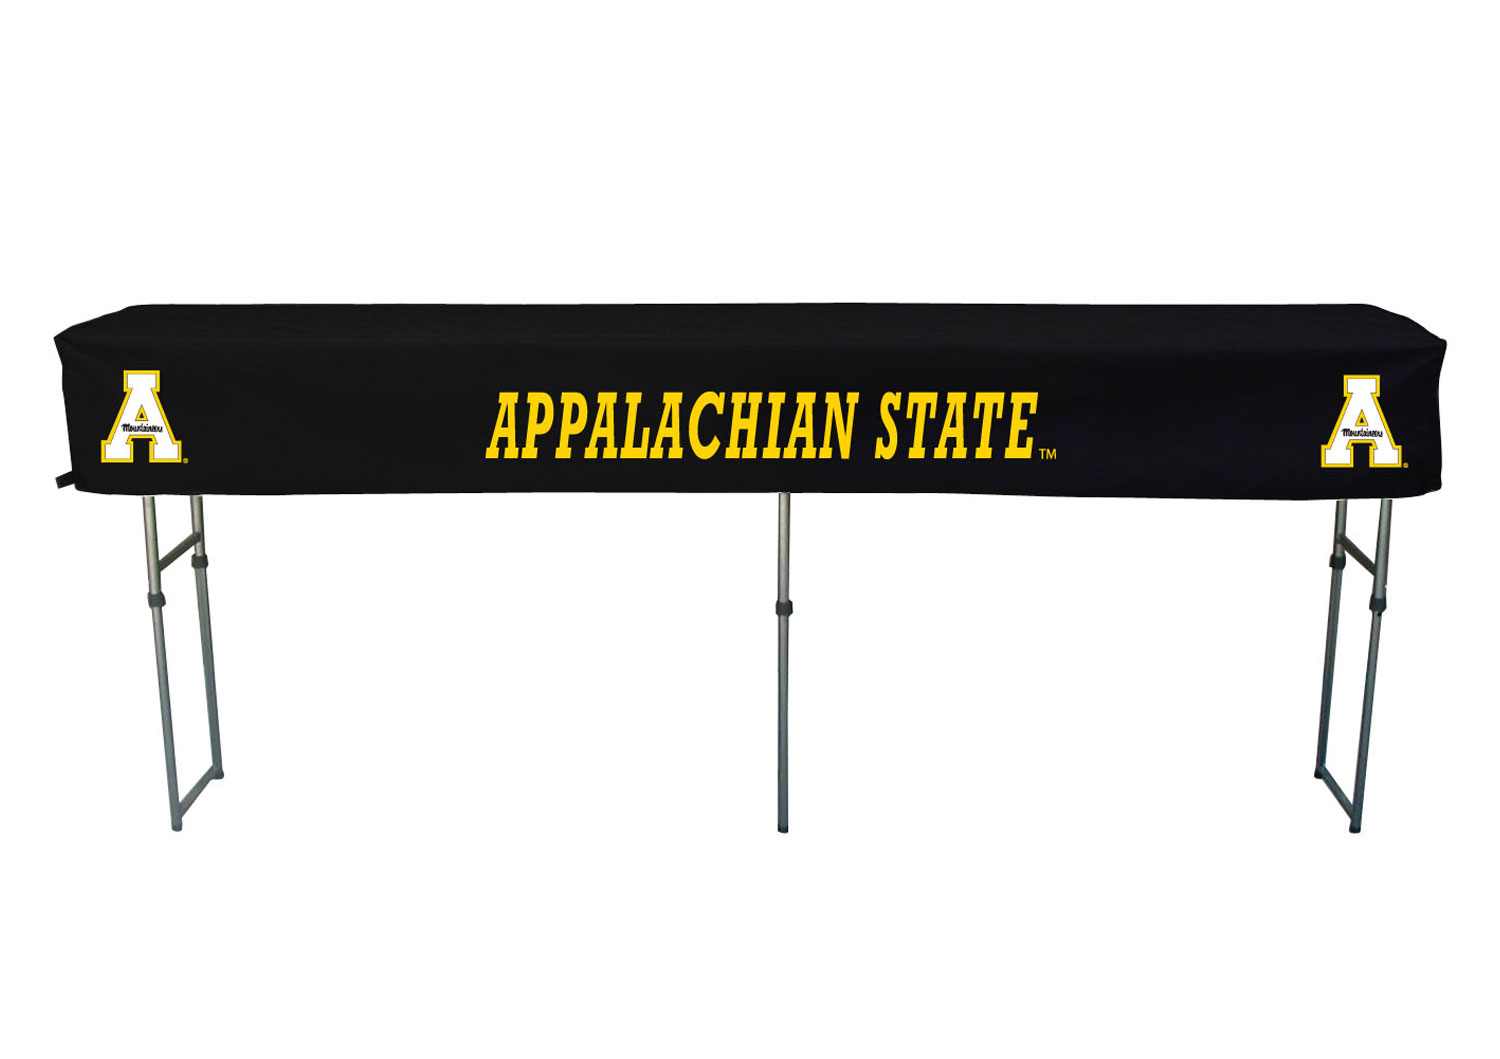 Appalachian State Canopy Table Cover